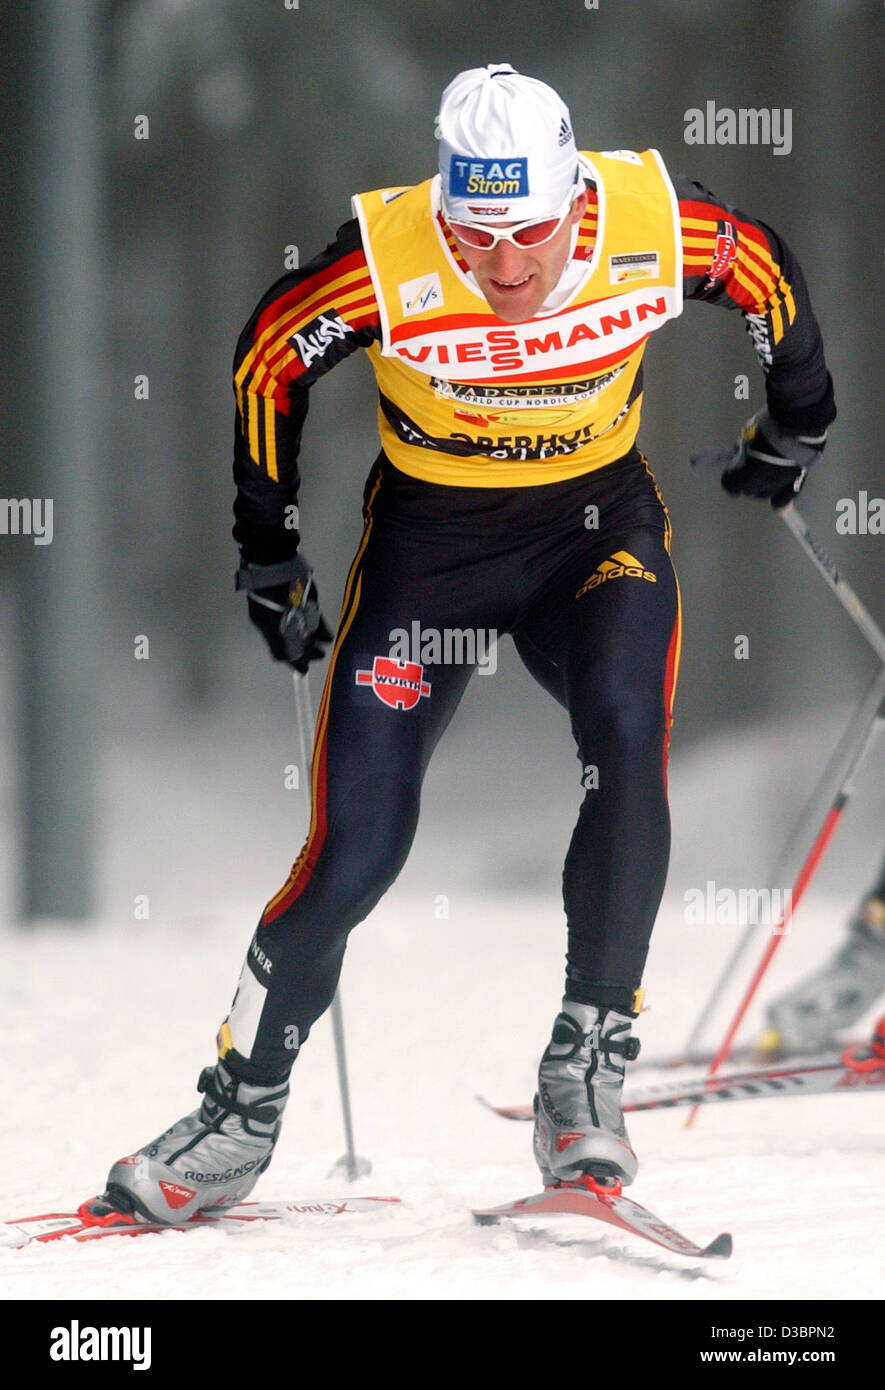 (dpa) - German Ronny Ackermann sprints during the Nordic Combined World Cup event in Oberhof, Germany, 30 December - Stock Image